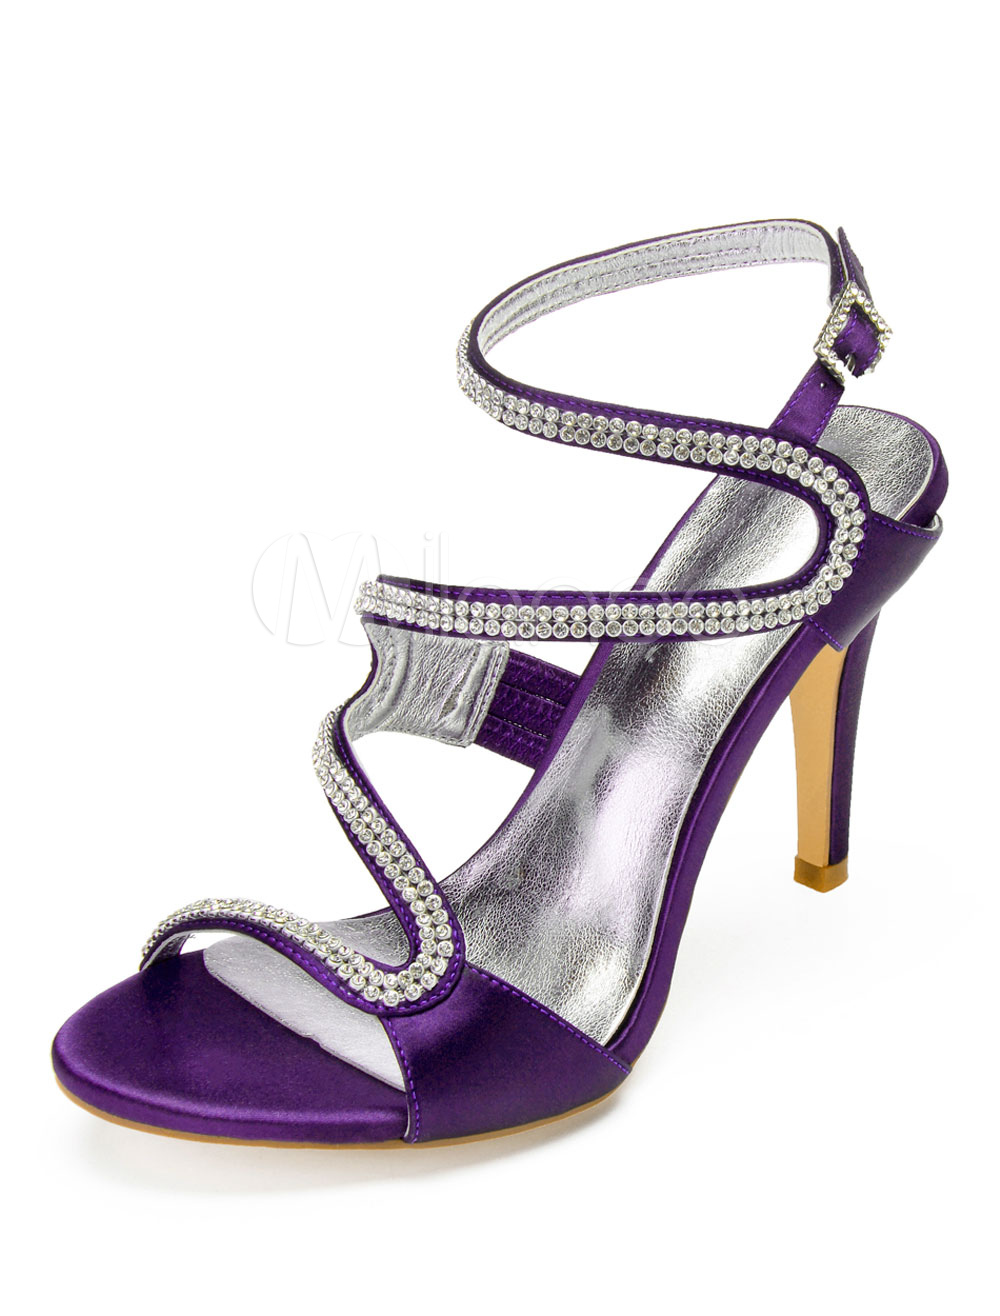 997c352dac75c Purple Mother Shoes Satin Open Toe Rhinestones Strappy Wedding Shoes High  Heel Sandals-No. 123. 30%OFF. Color:Plum